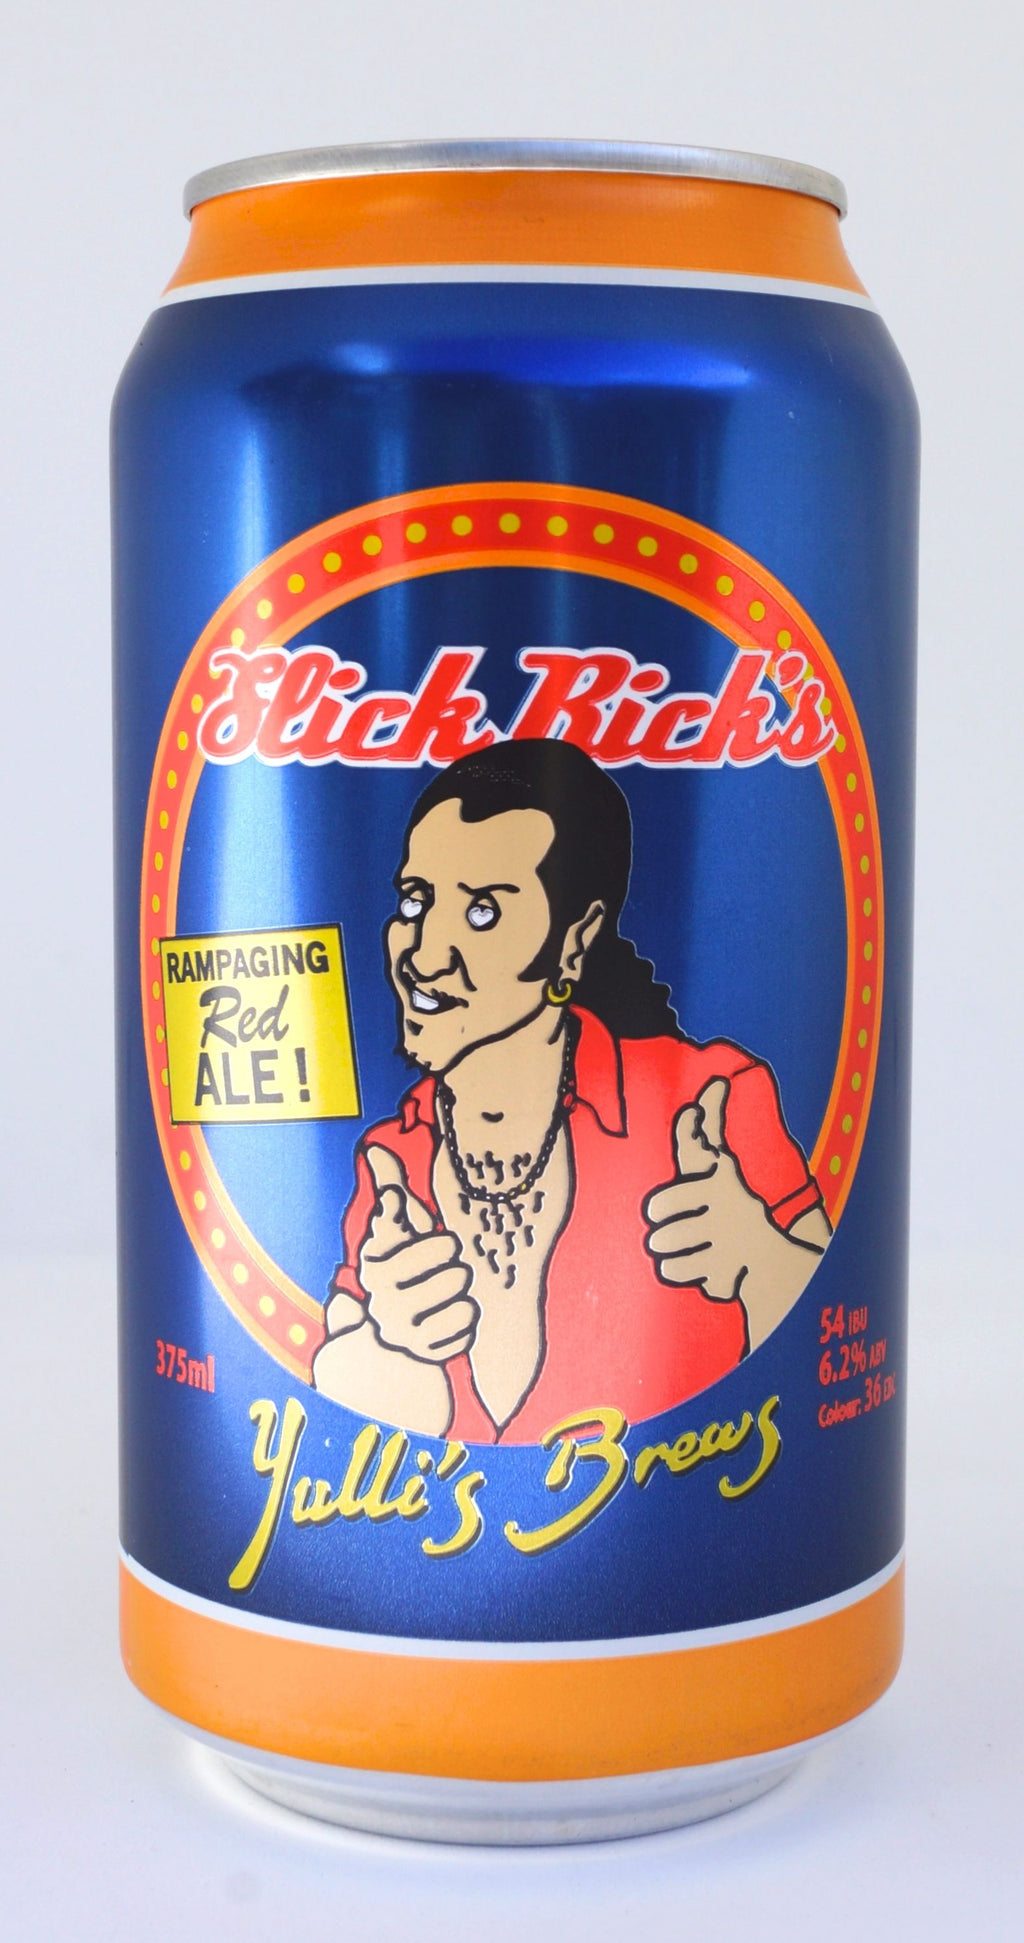 Yulli's Slick Rick's Rampaging Red Ale